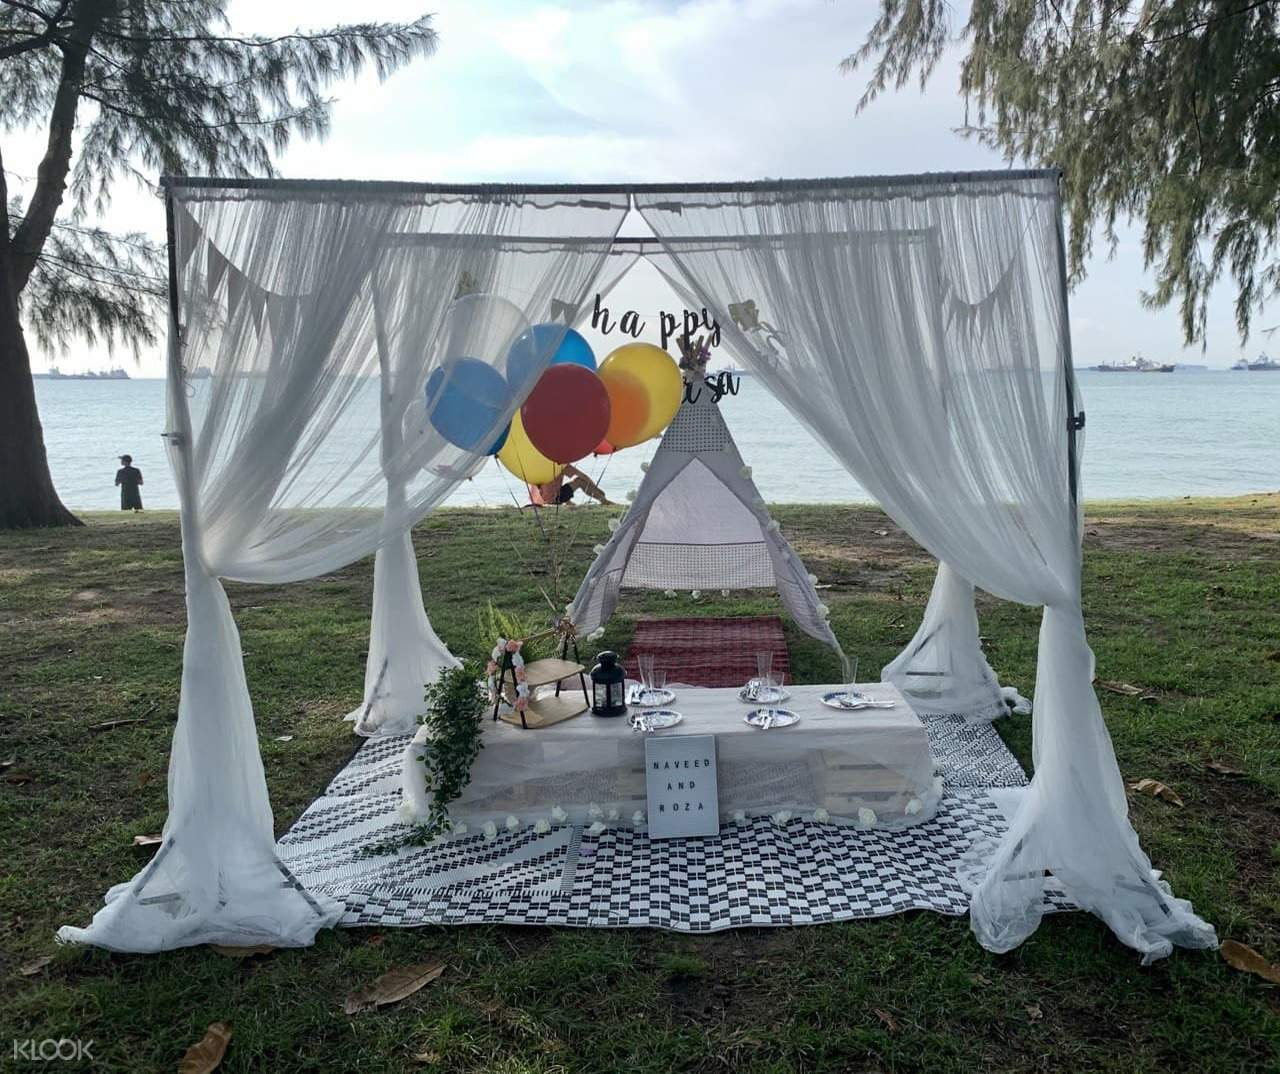 Picnic setup with teepee and lace standees